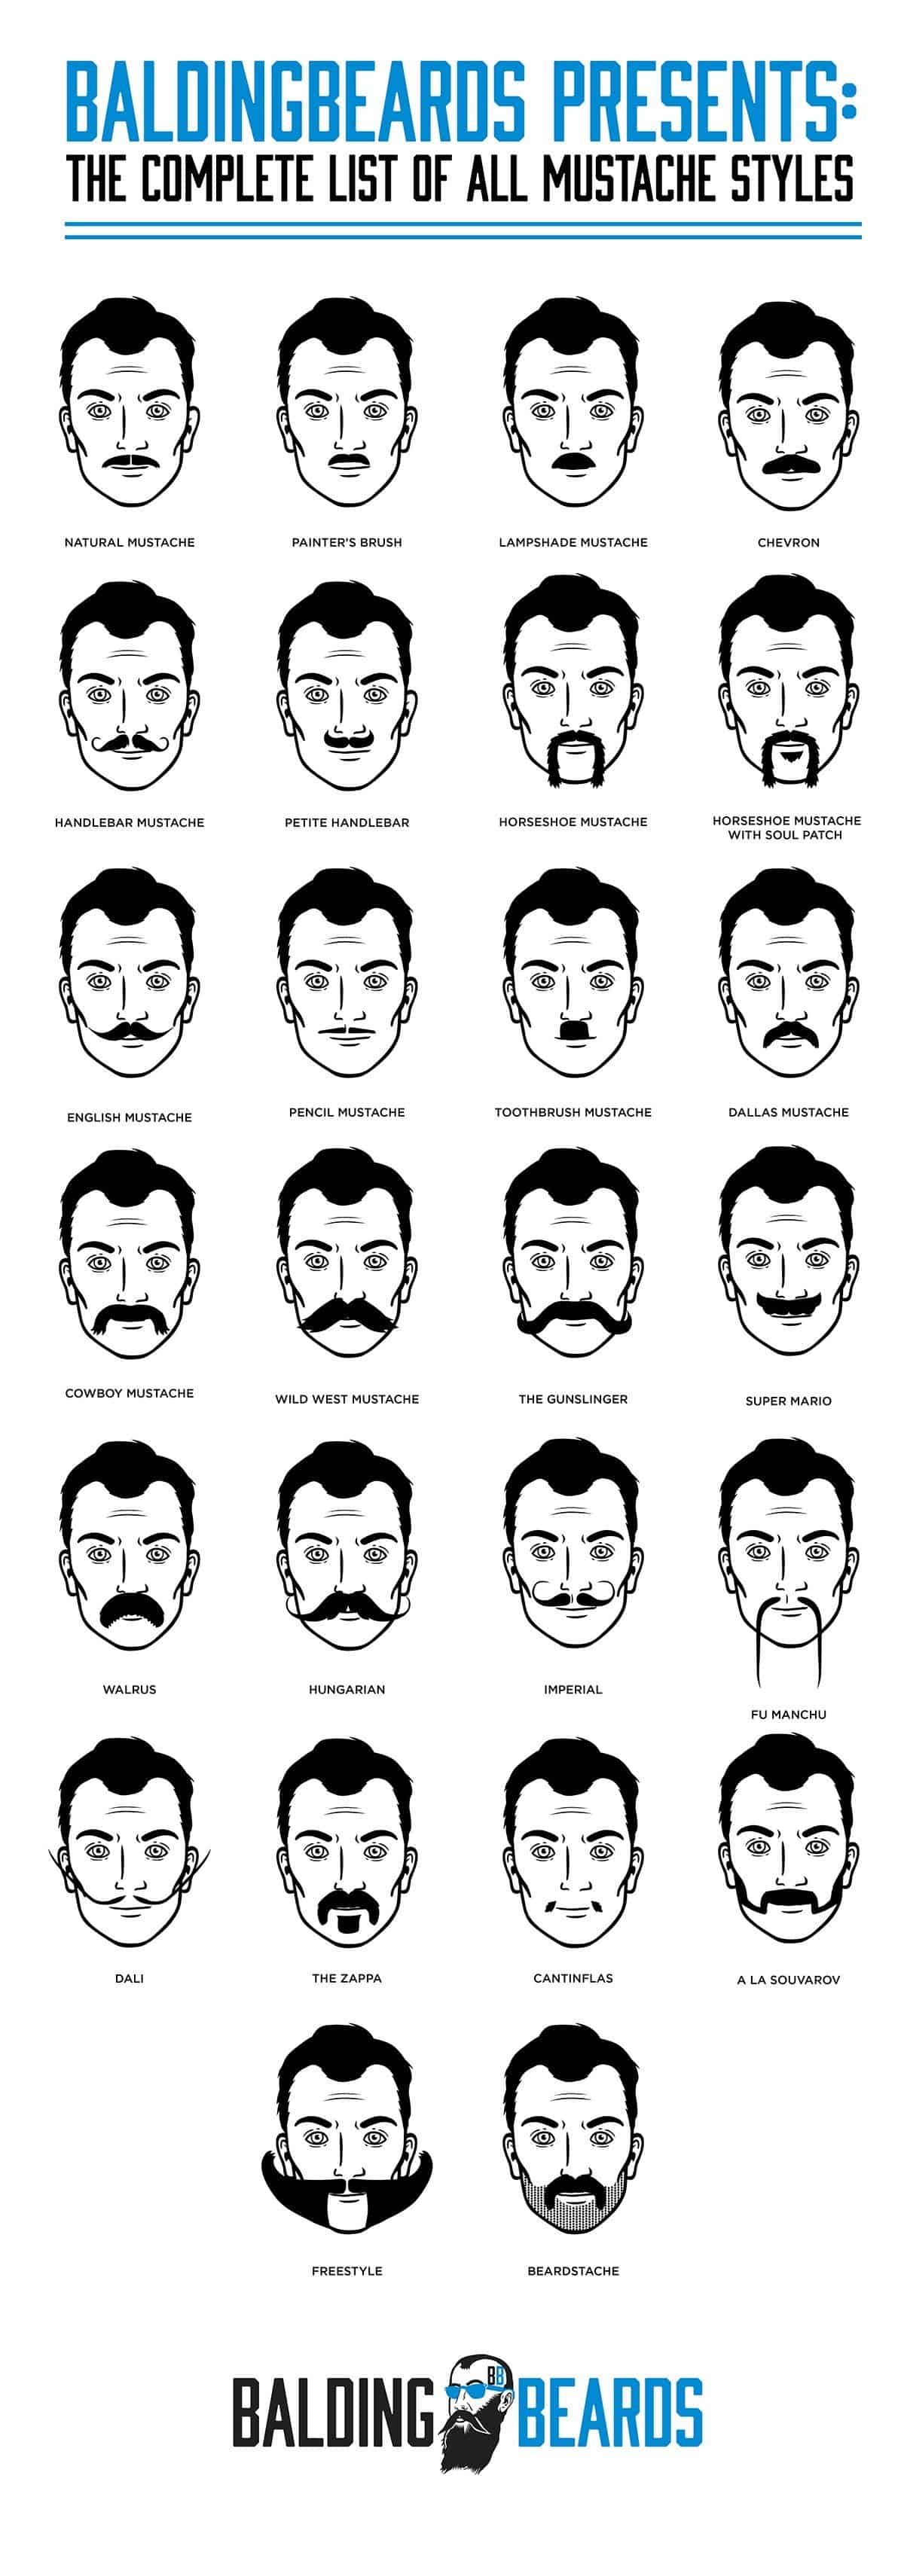 Other Names For Mustache : other, names, mustache, Mustache, Styles, Should, Least